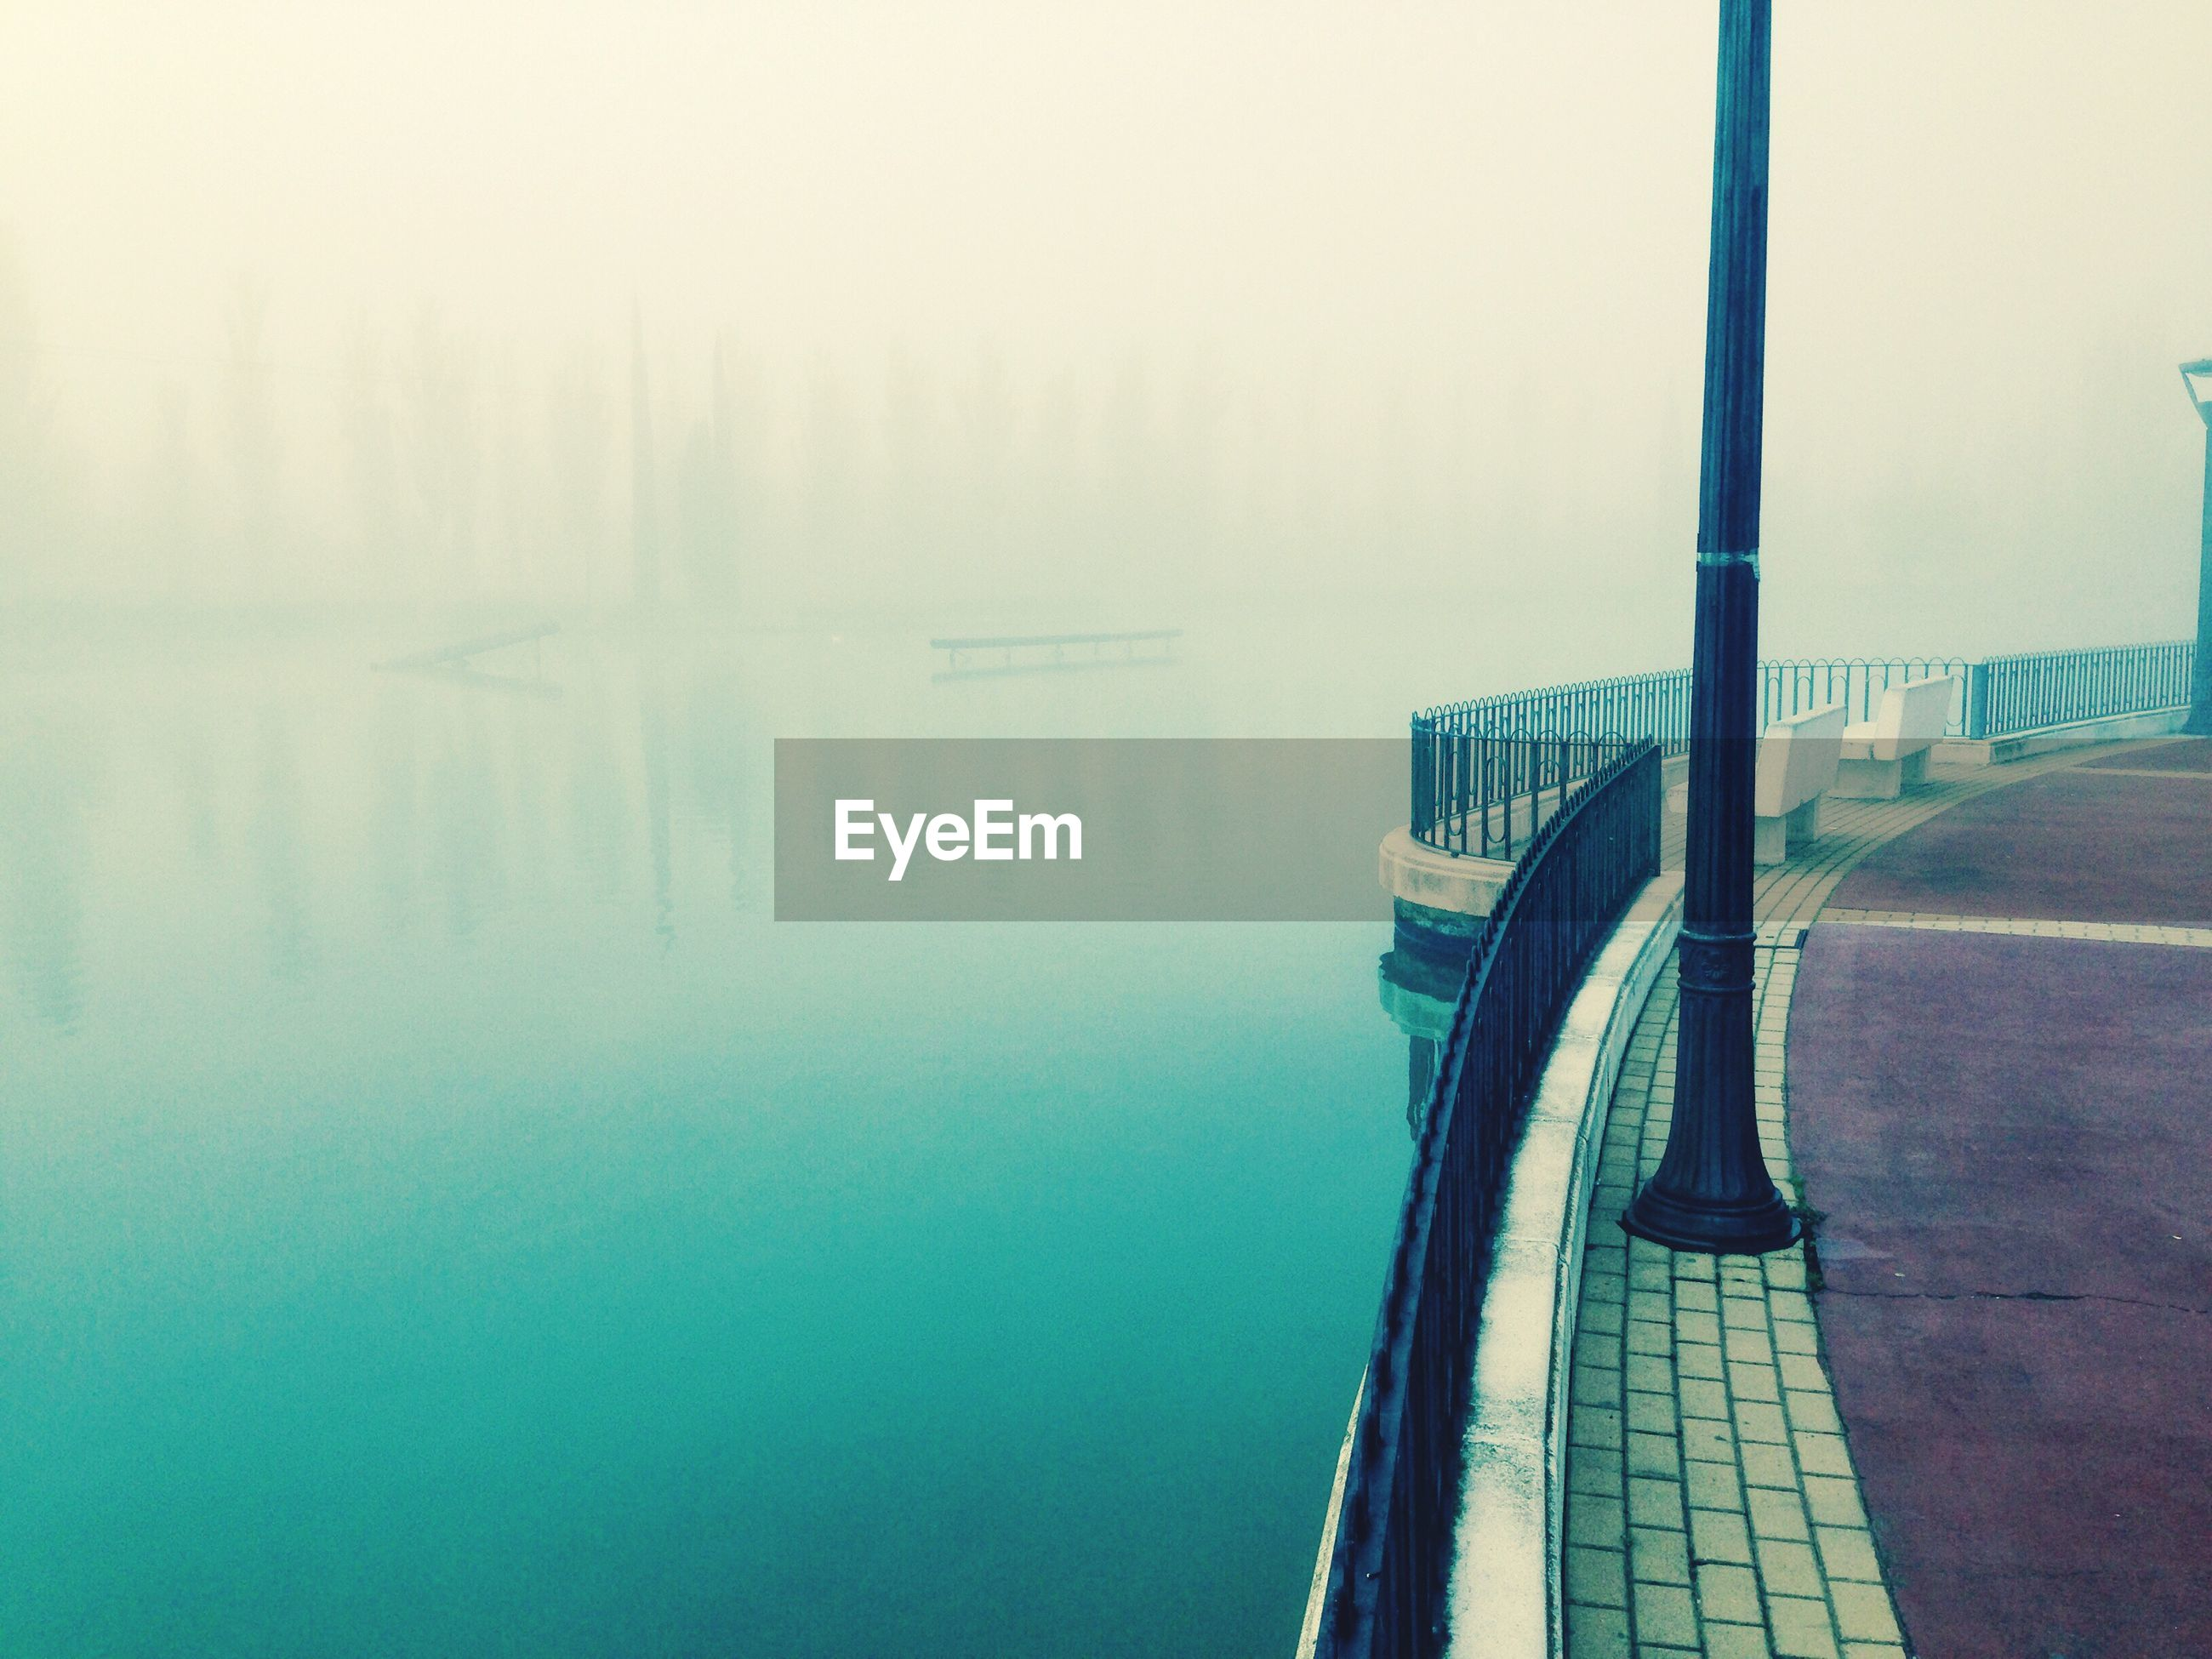 Promenade by calm lake during foggy weather